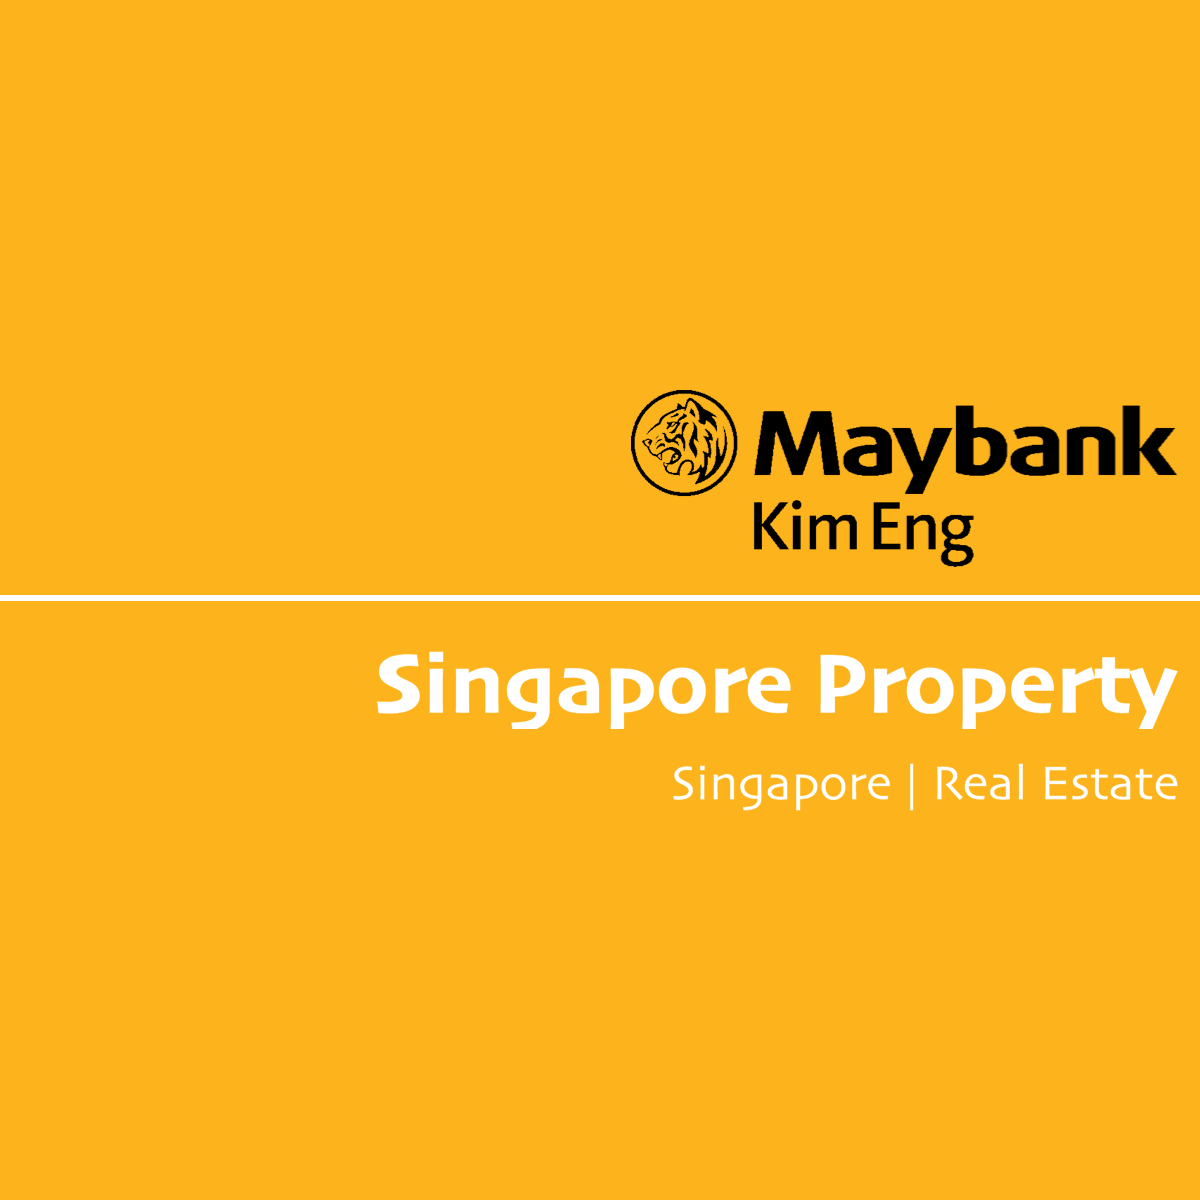 Singapore Property Stocks - Maybank Kim Eng 2018-03-19: Building In Latest Enbloc Deals